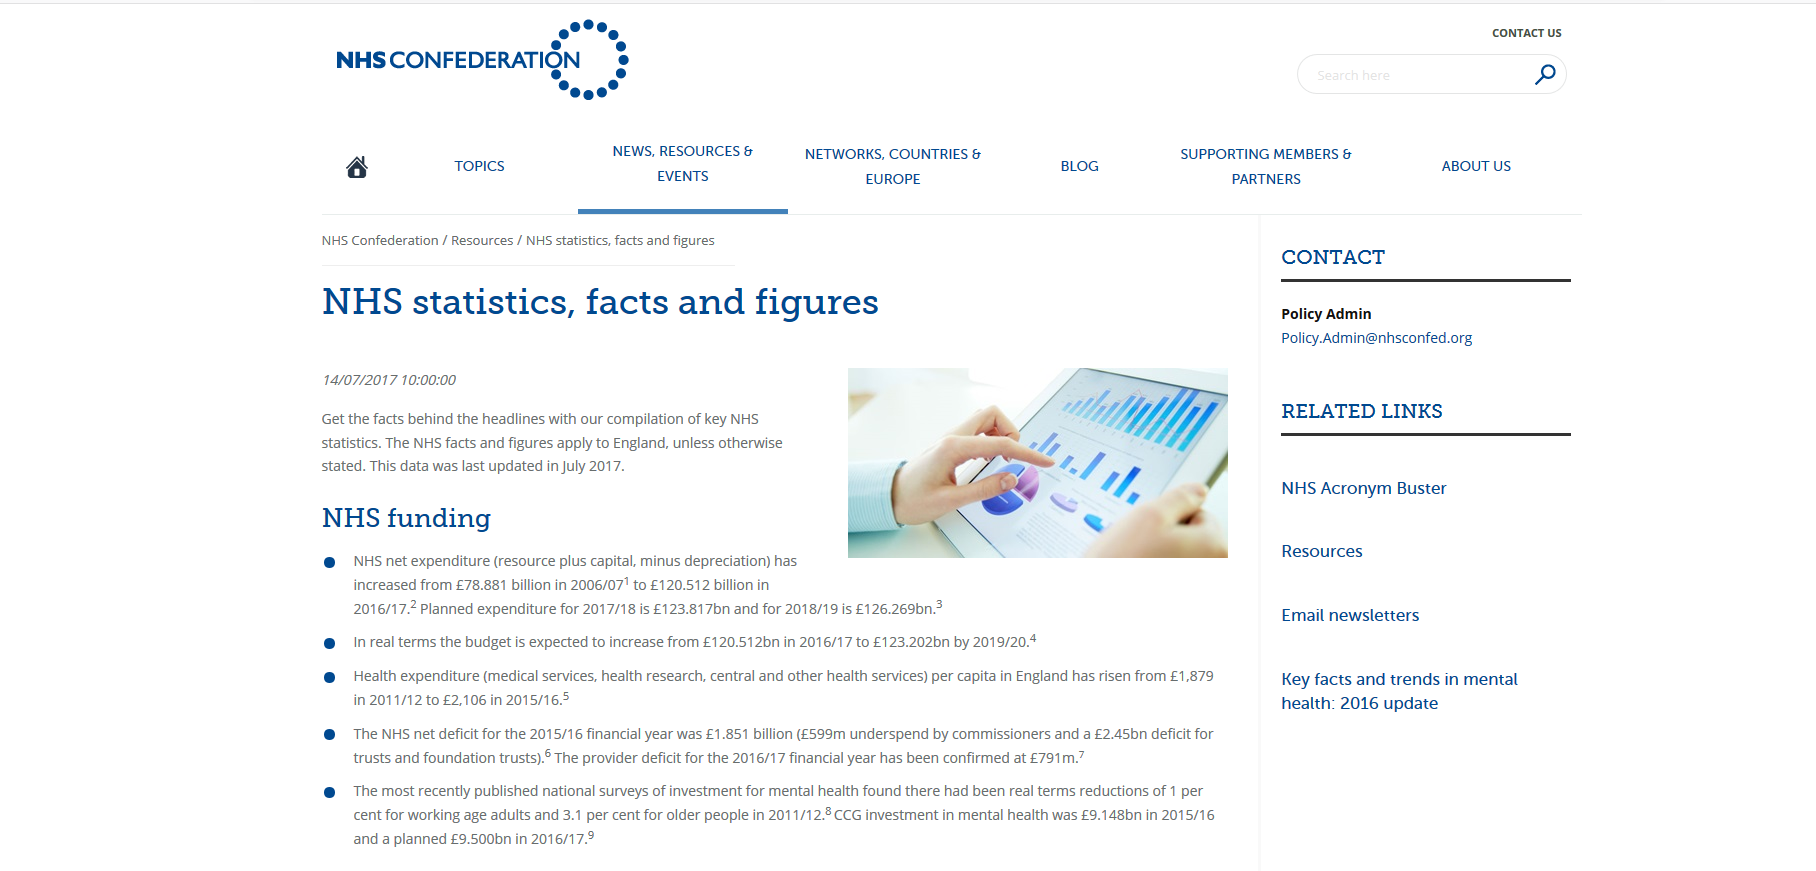 NHS Confederation NHS statistics, facts and figures